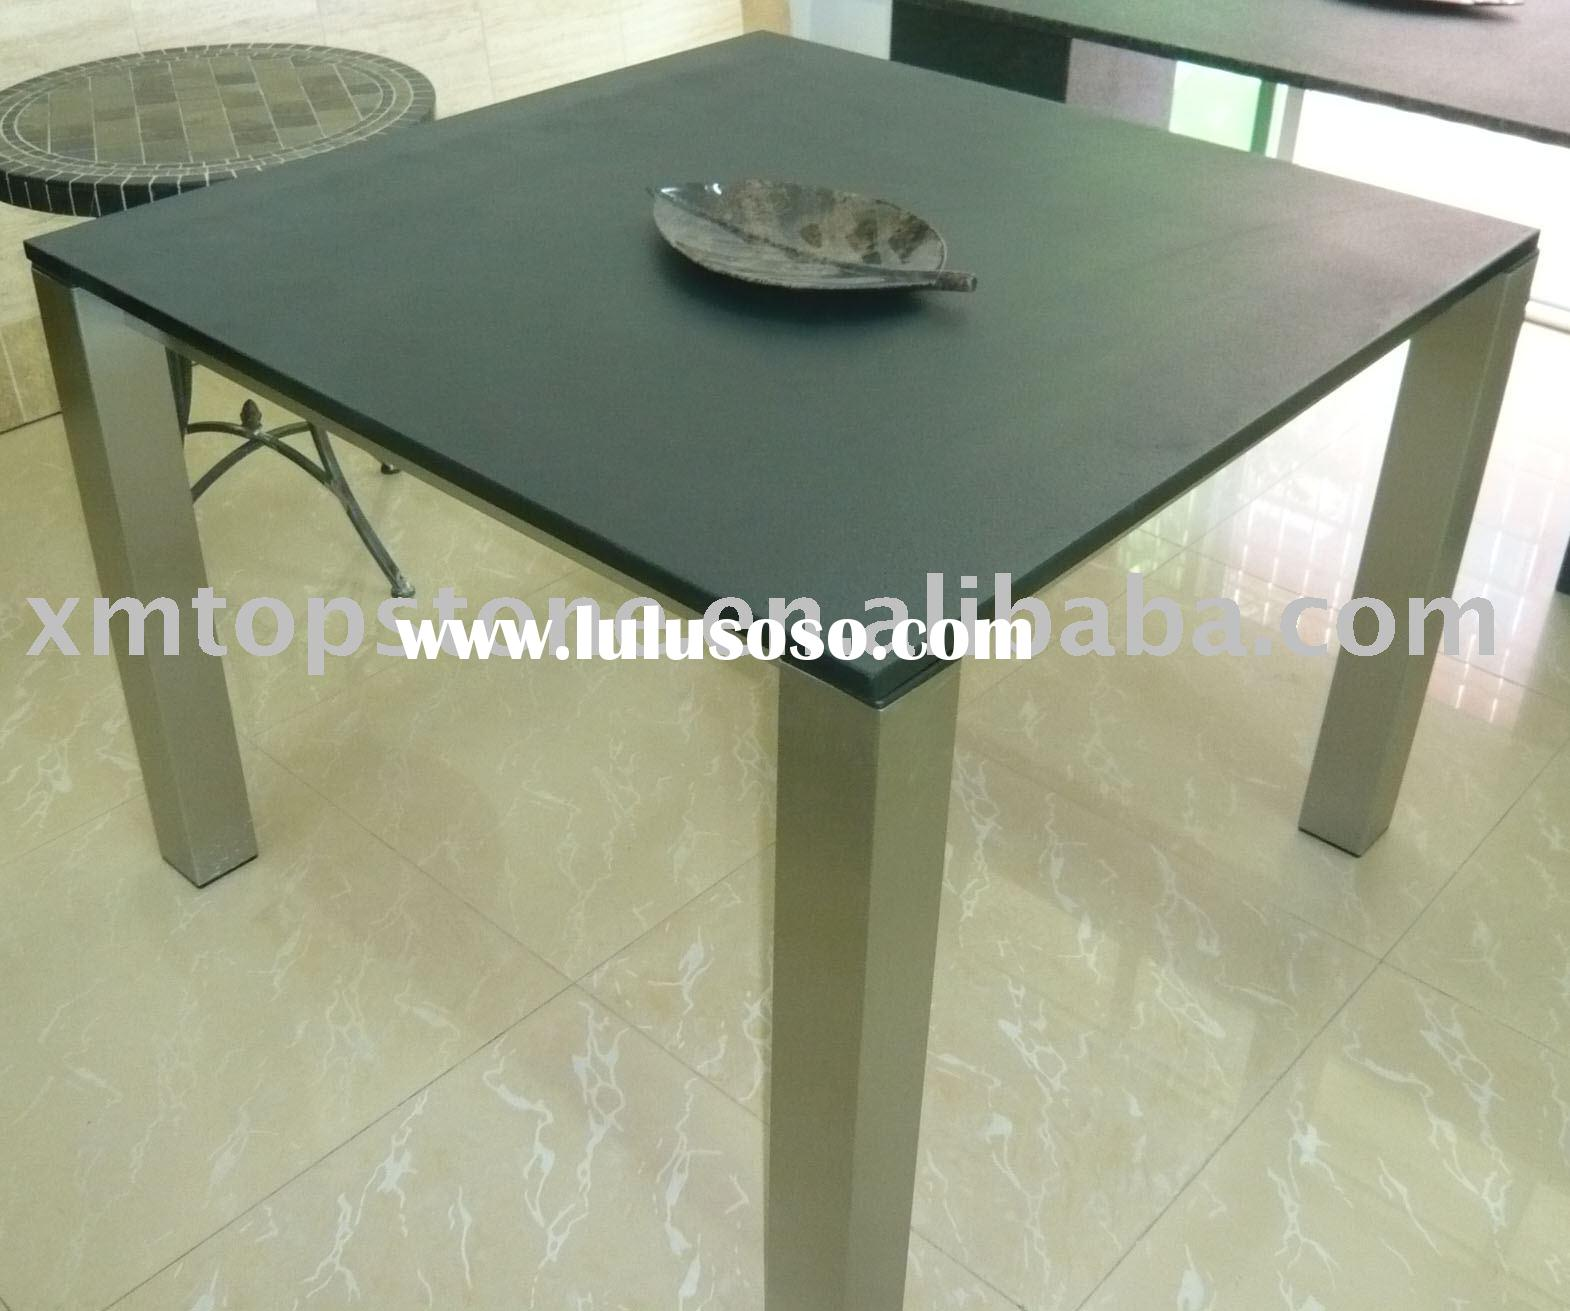 Granite Top Tables granite top kitchen table Granite Marble stone top dining tables